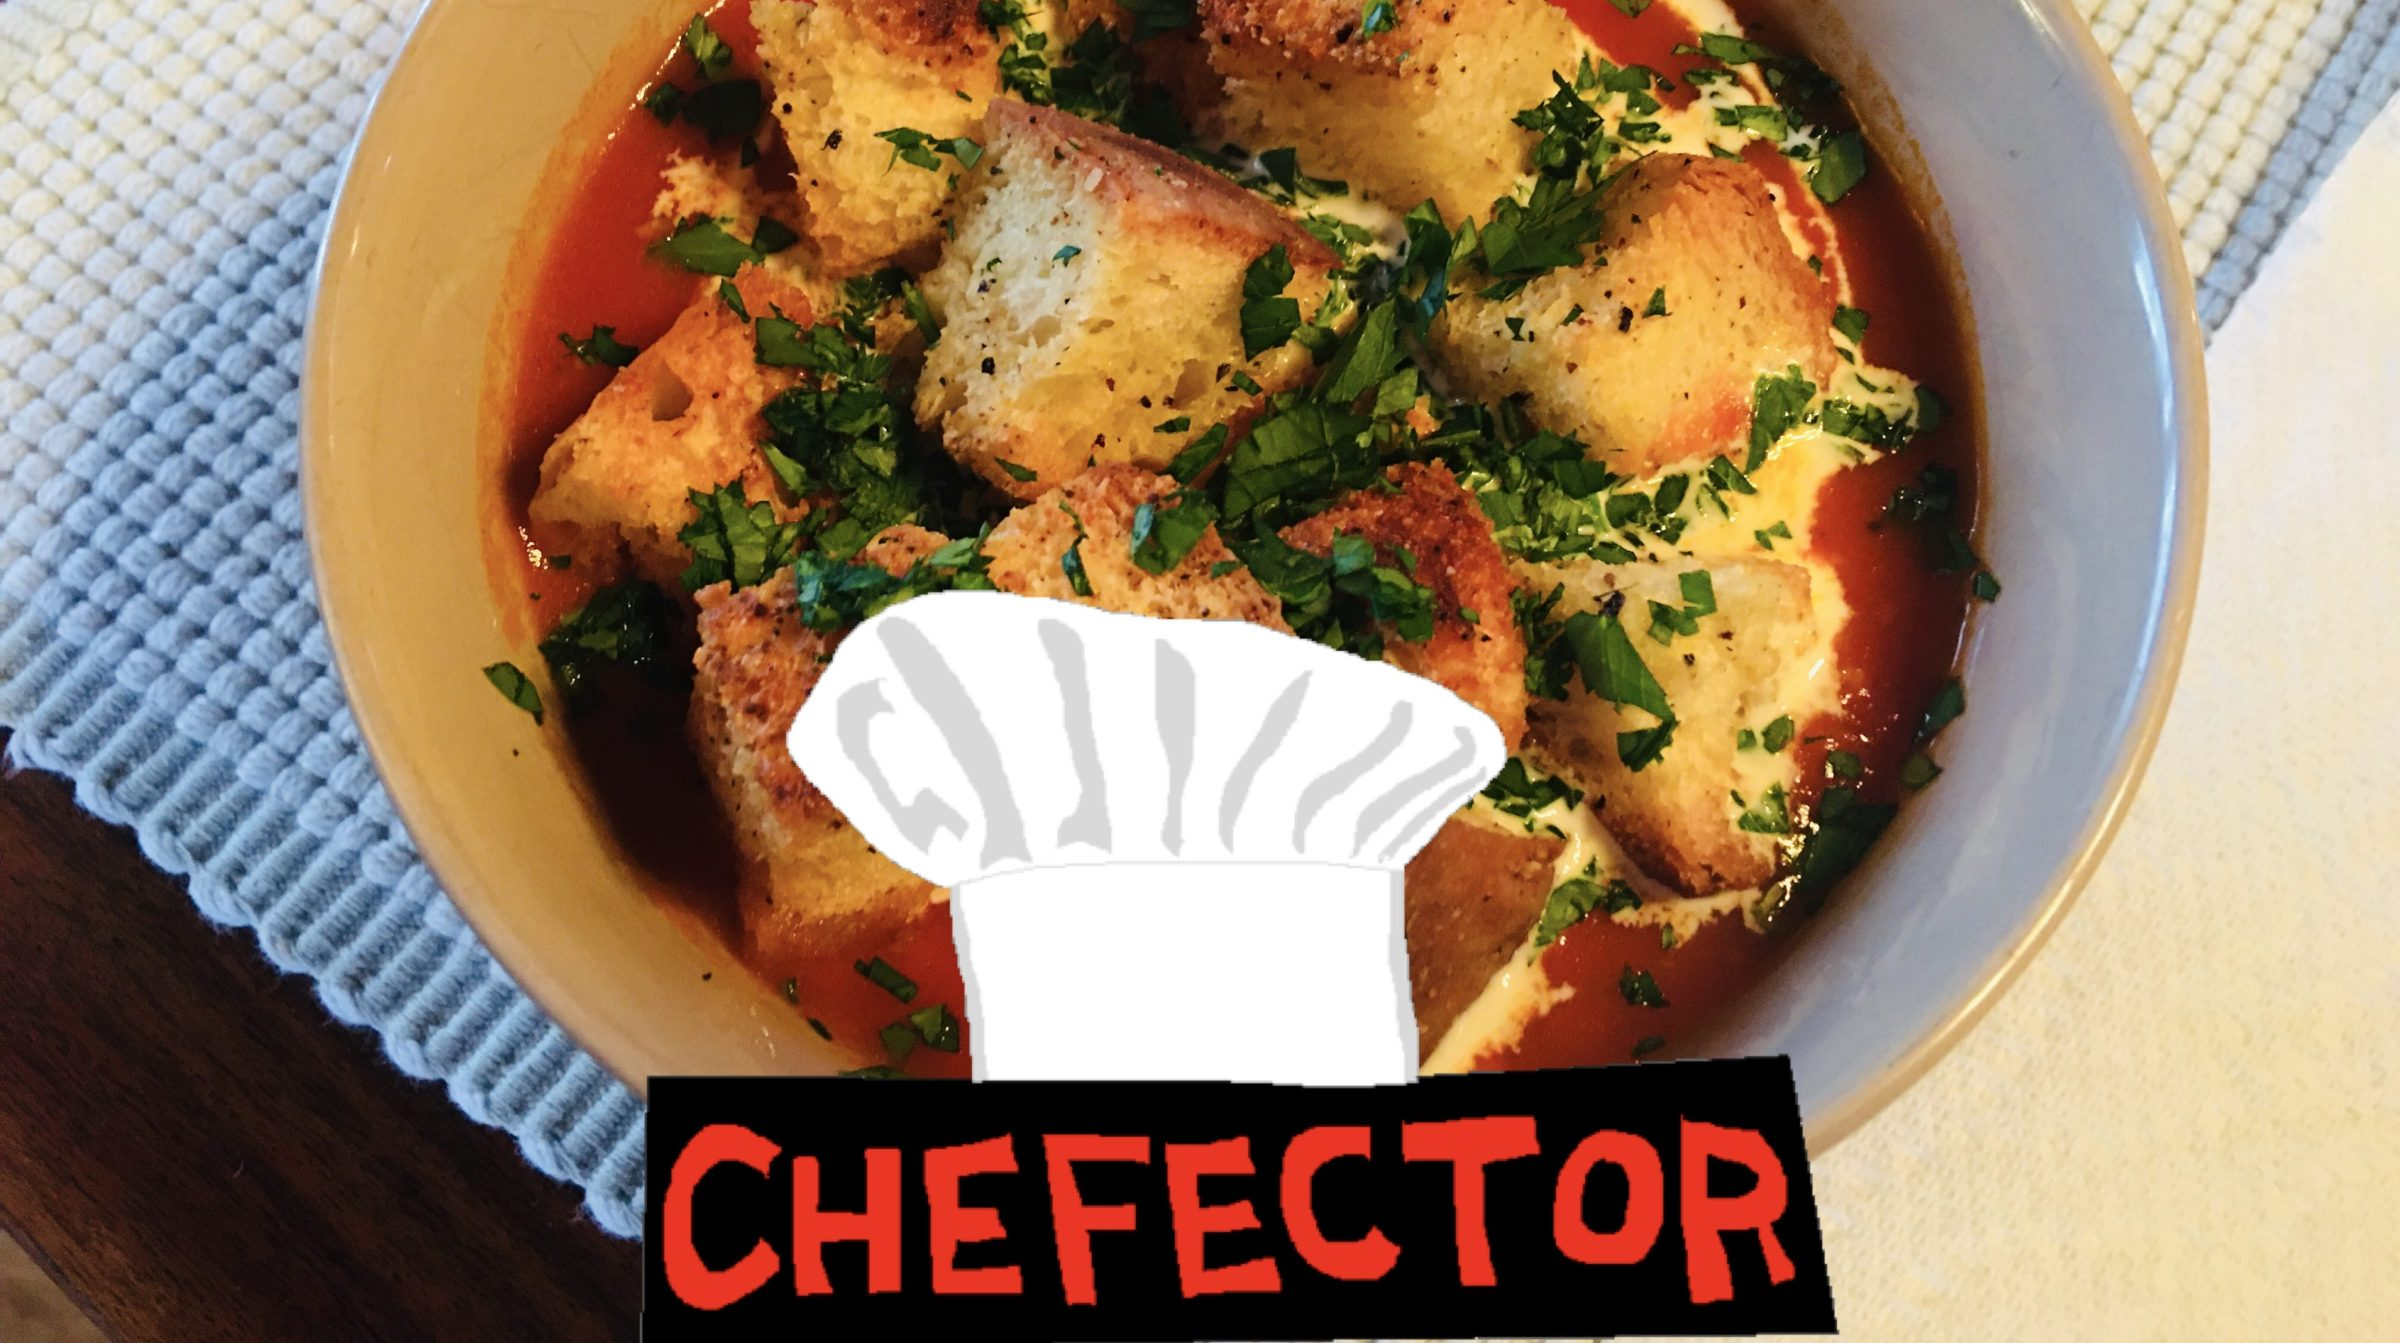 A bowl of tomato soup with croutons and herbs